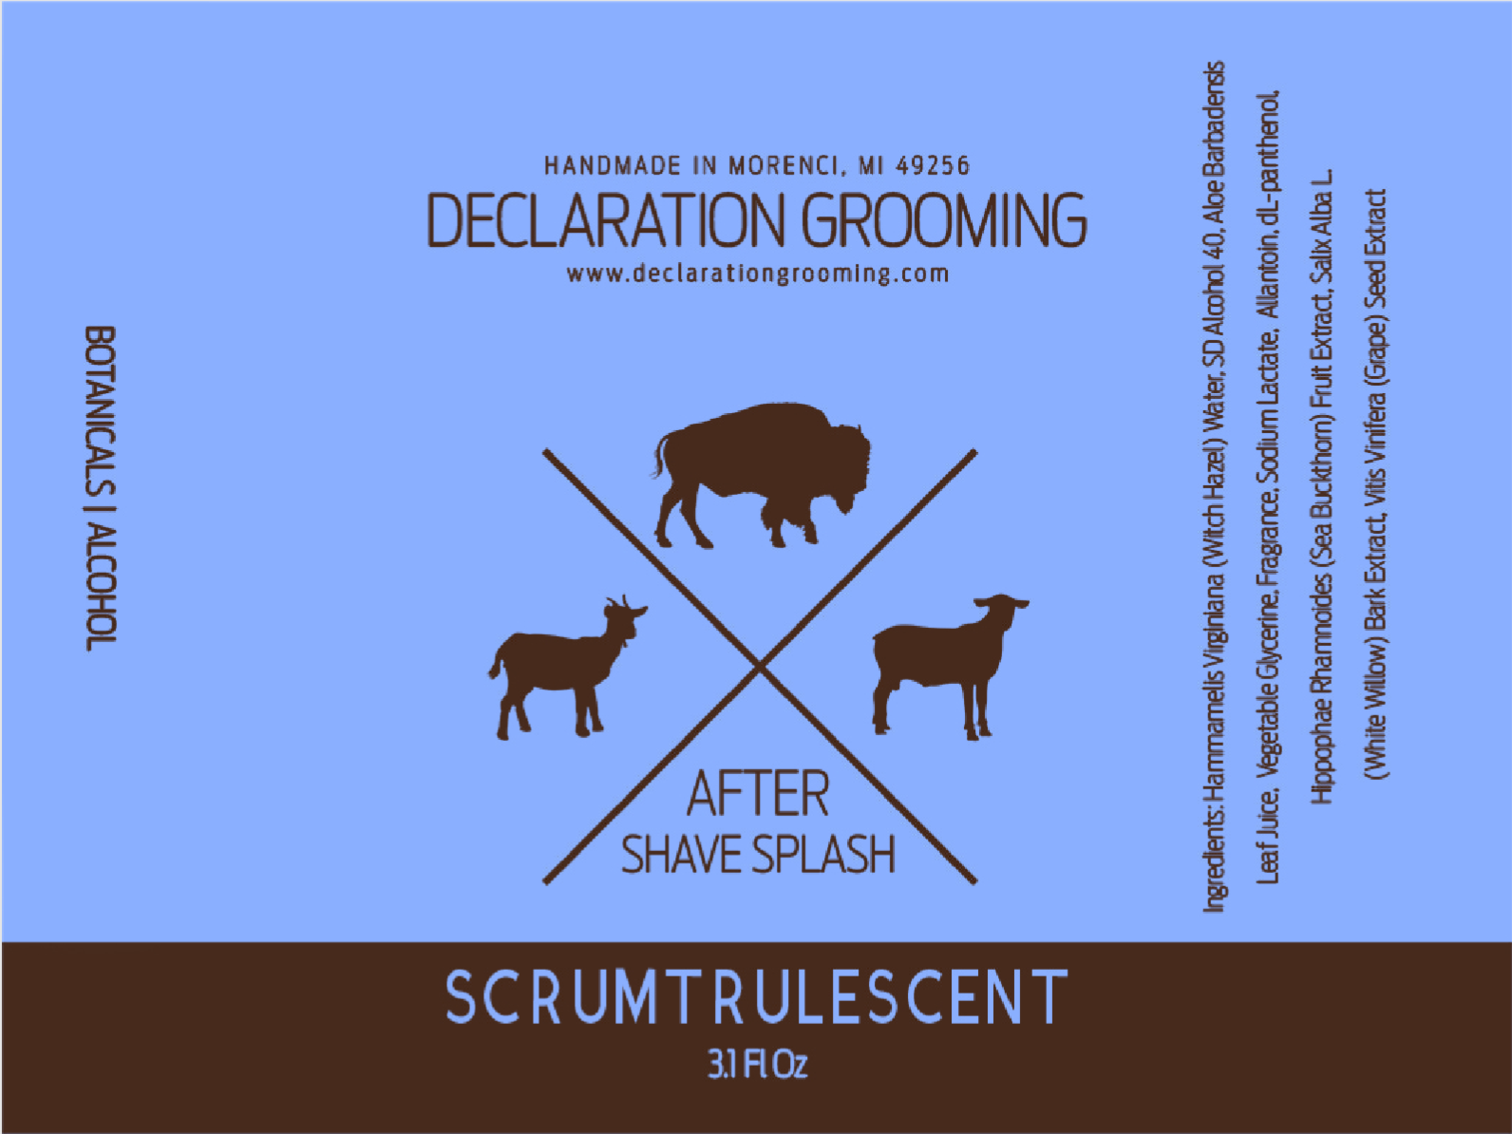 Declaration Grooming - Scrumtrulescent - Aftershave image